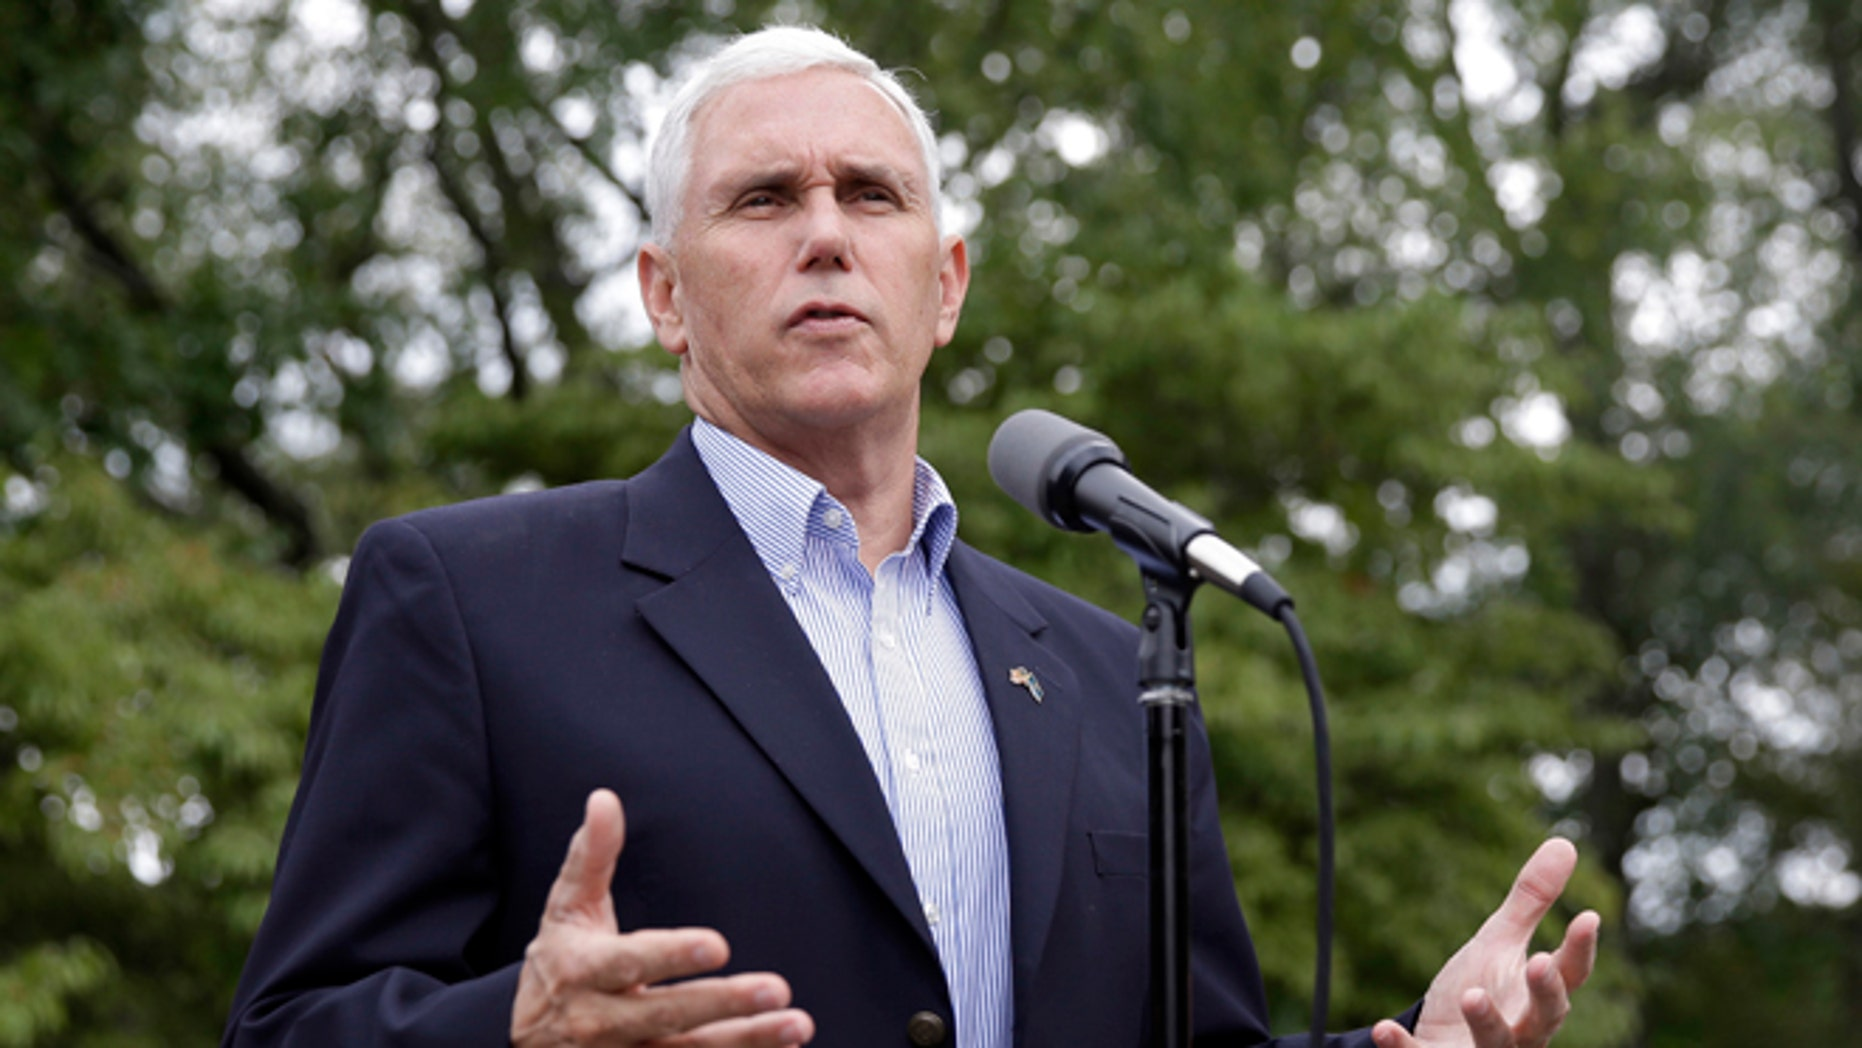 FILE - Republican vice presidential candidate, Indiana Gov. Mike Pence comments after receiving a national security briefing in Indianapolis, Friday, Sept. 9, 2016.